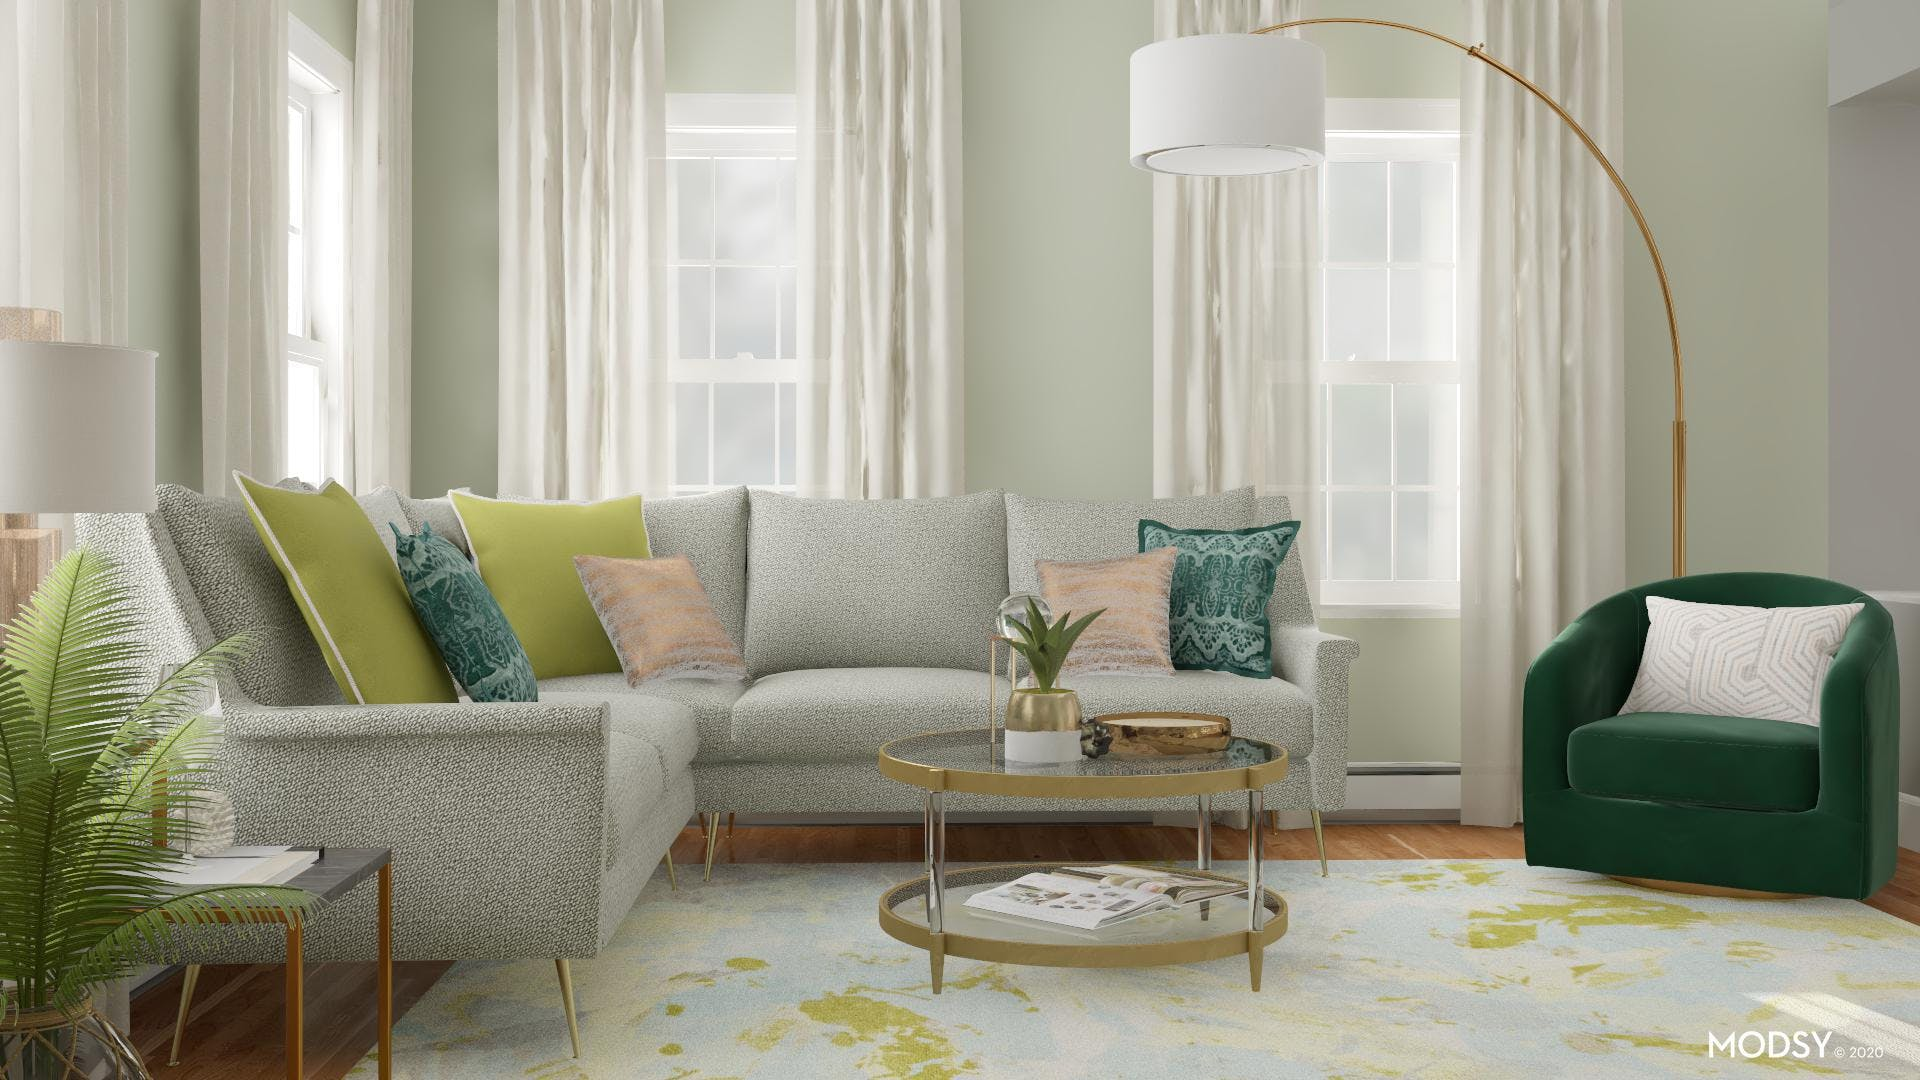 A Styled Living Room With Green